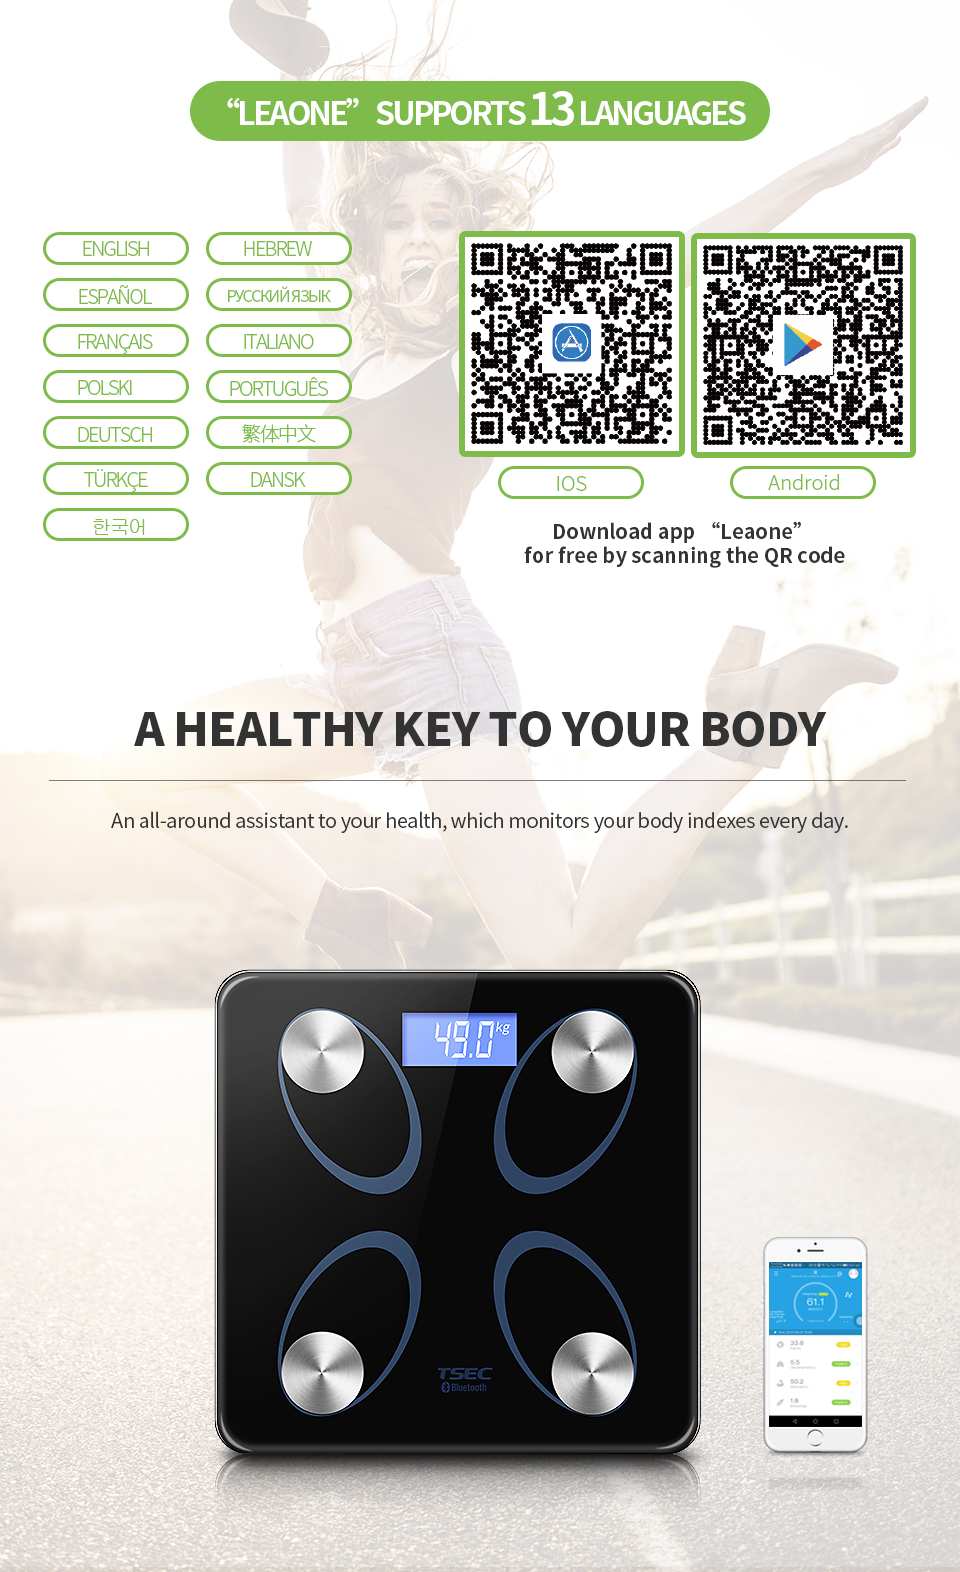 Household 180kg 6mm Tempered Glass Smart Bluetooth Digital Bathroom Body Waterproof Weight Fat Analysis Personal Weight Scales